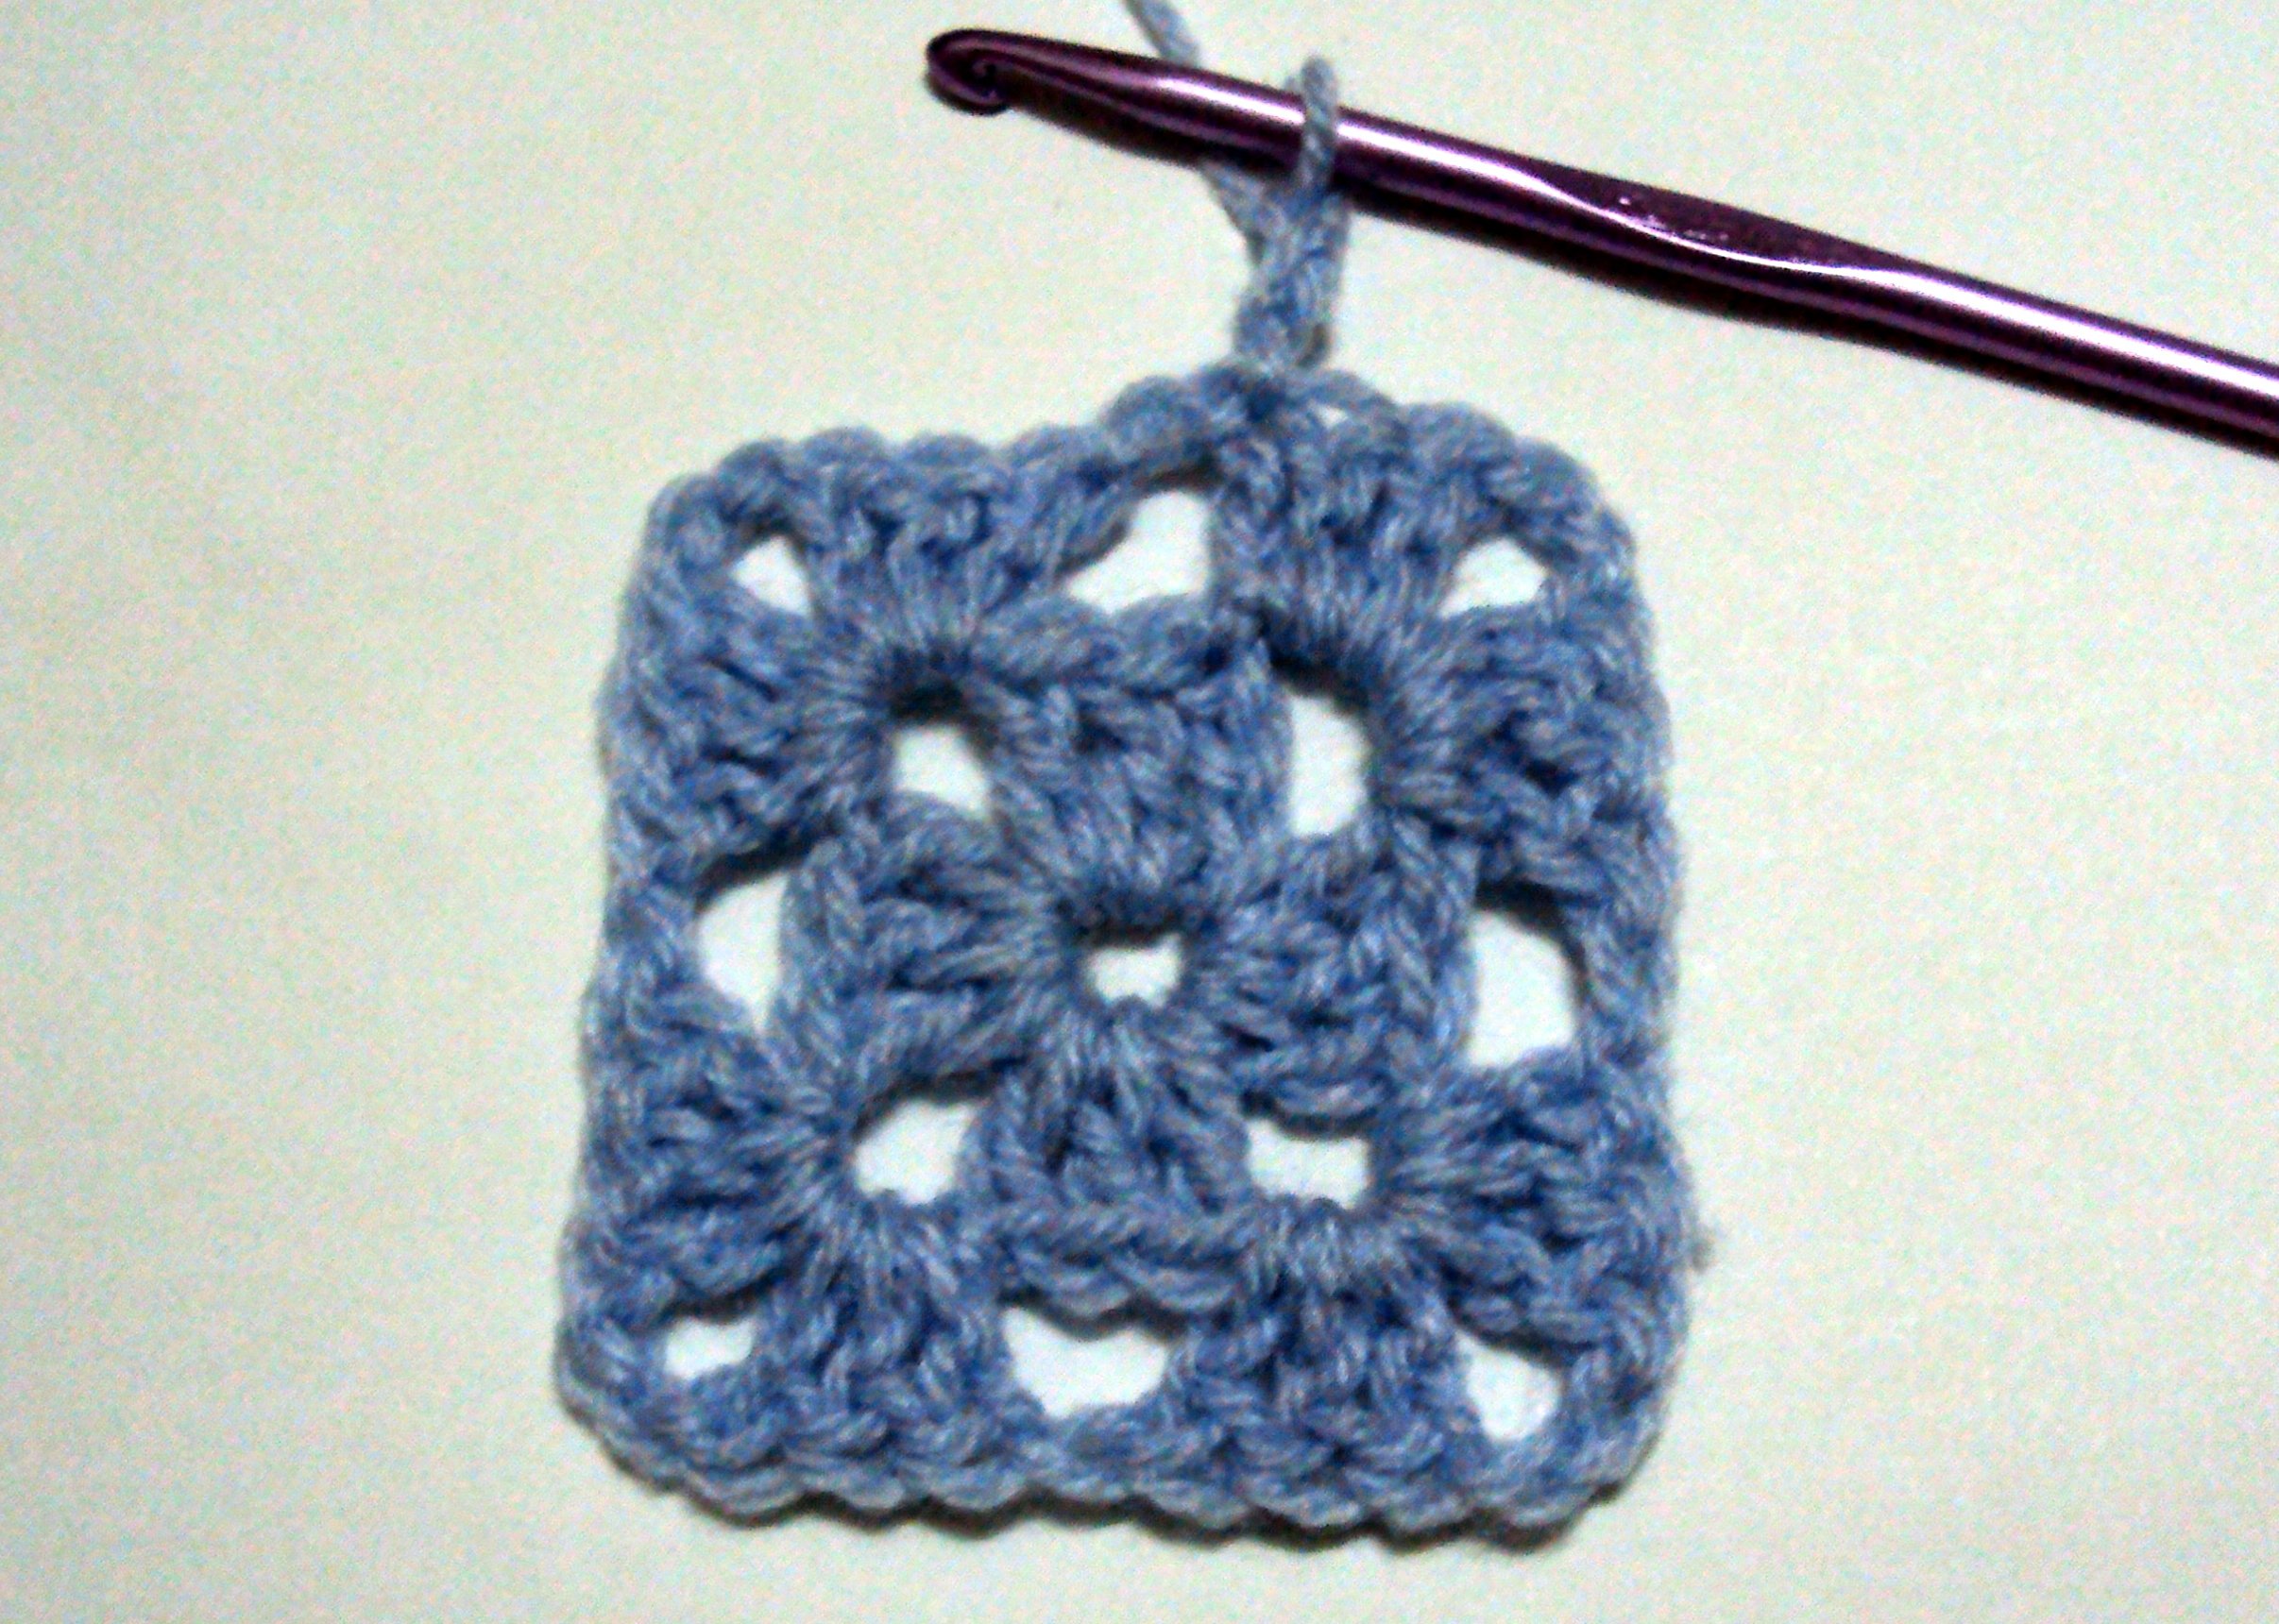 Crochet Stitches Step By Step : Crochet Patterns For Beginners Step By Step crochet spot ? blog ...